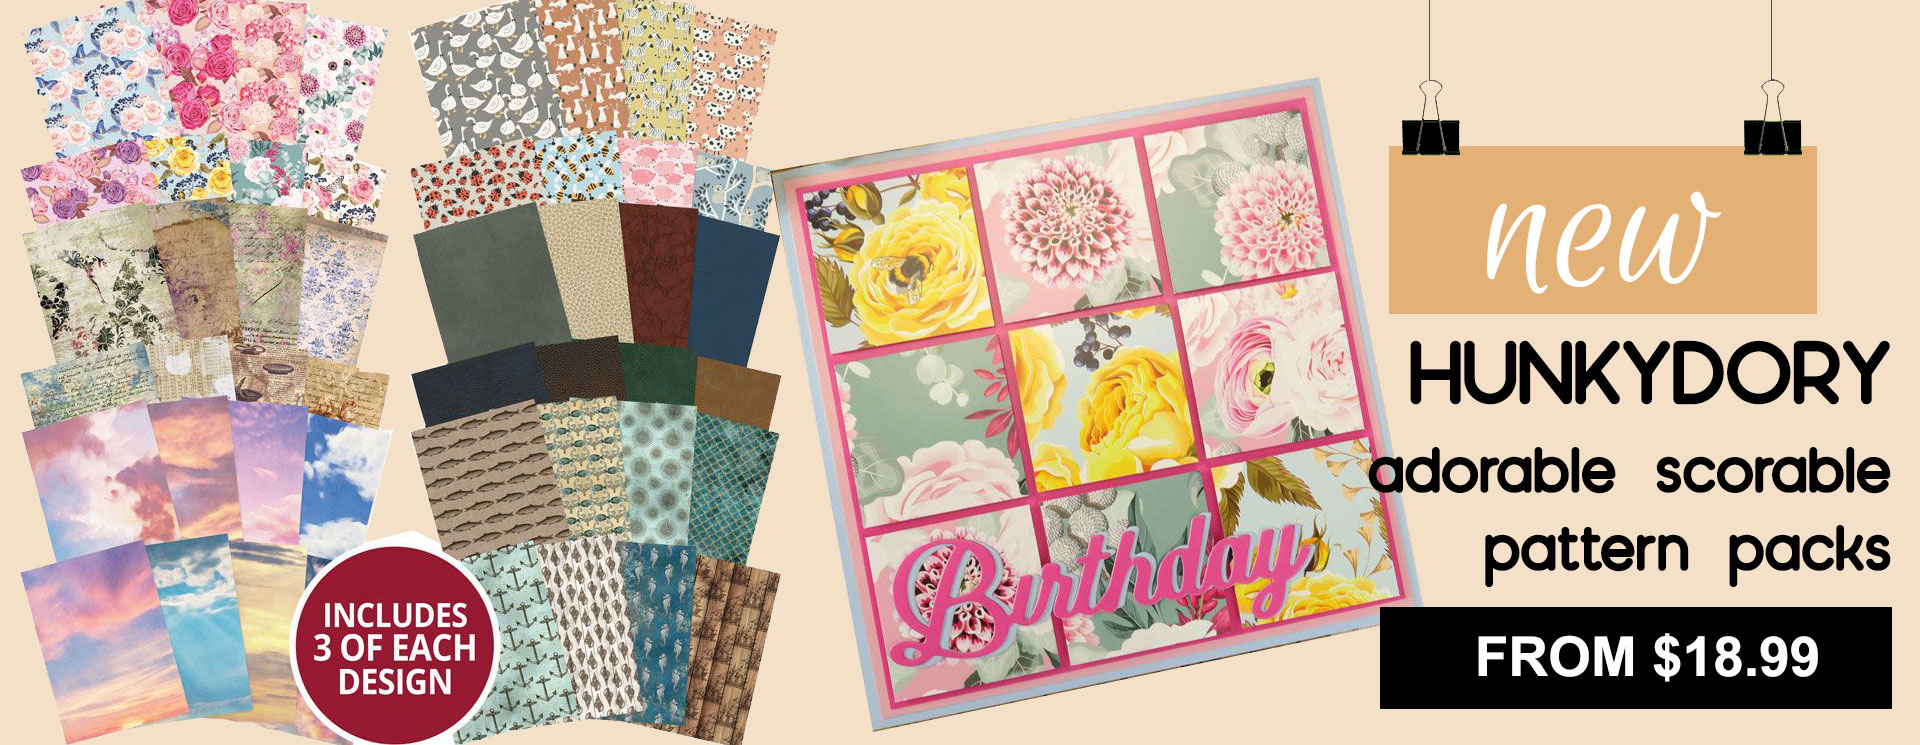 Adorable Scorable Pattern Packs